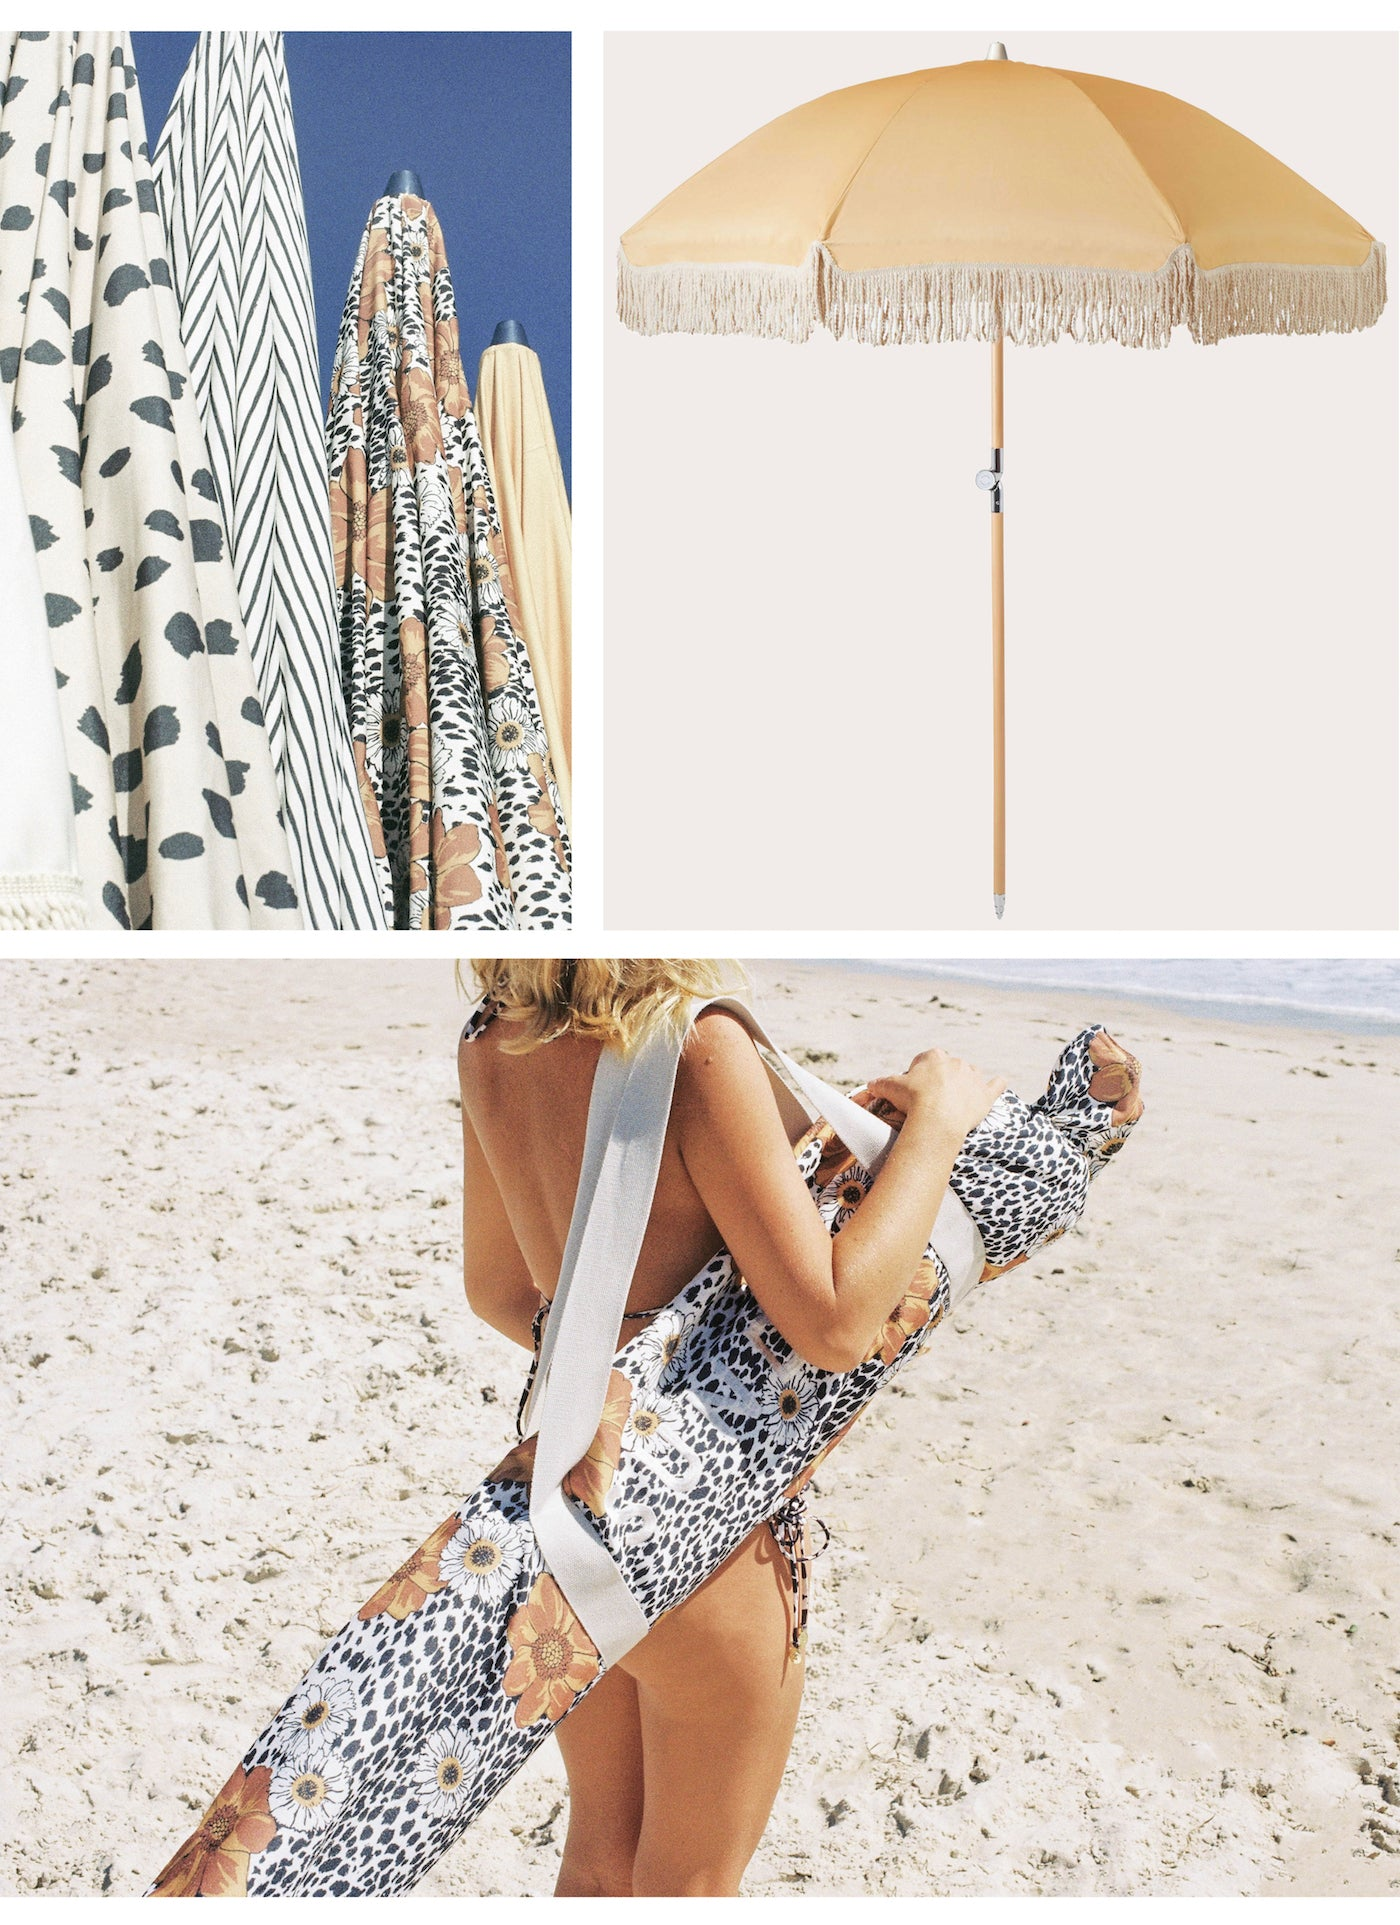 Sunday Supply Co - Vintage Beach Umbrellas - Paper Plane